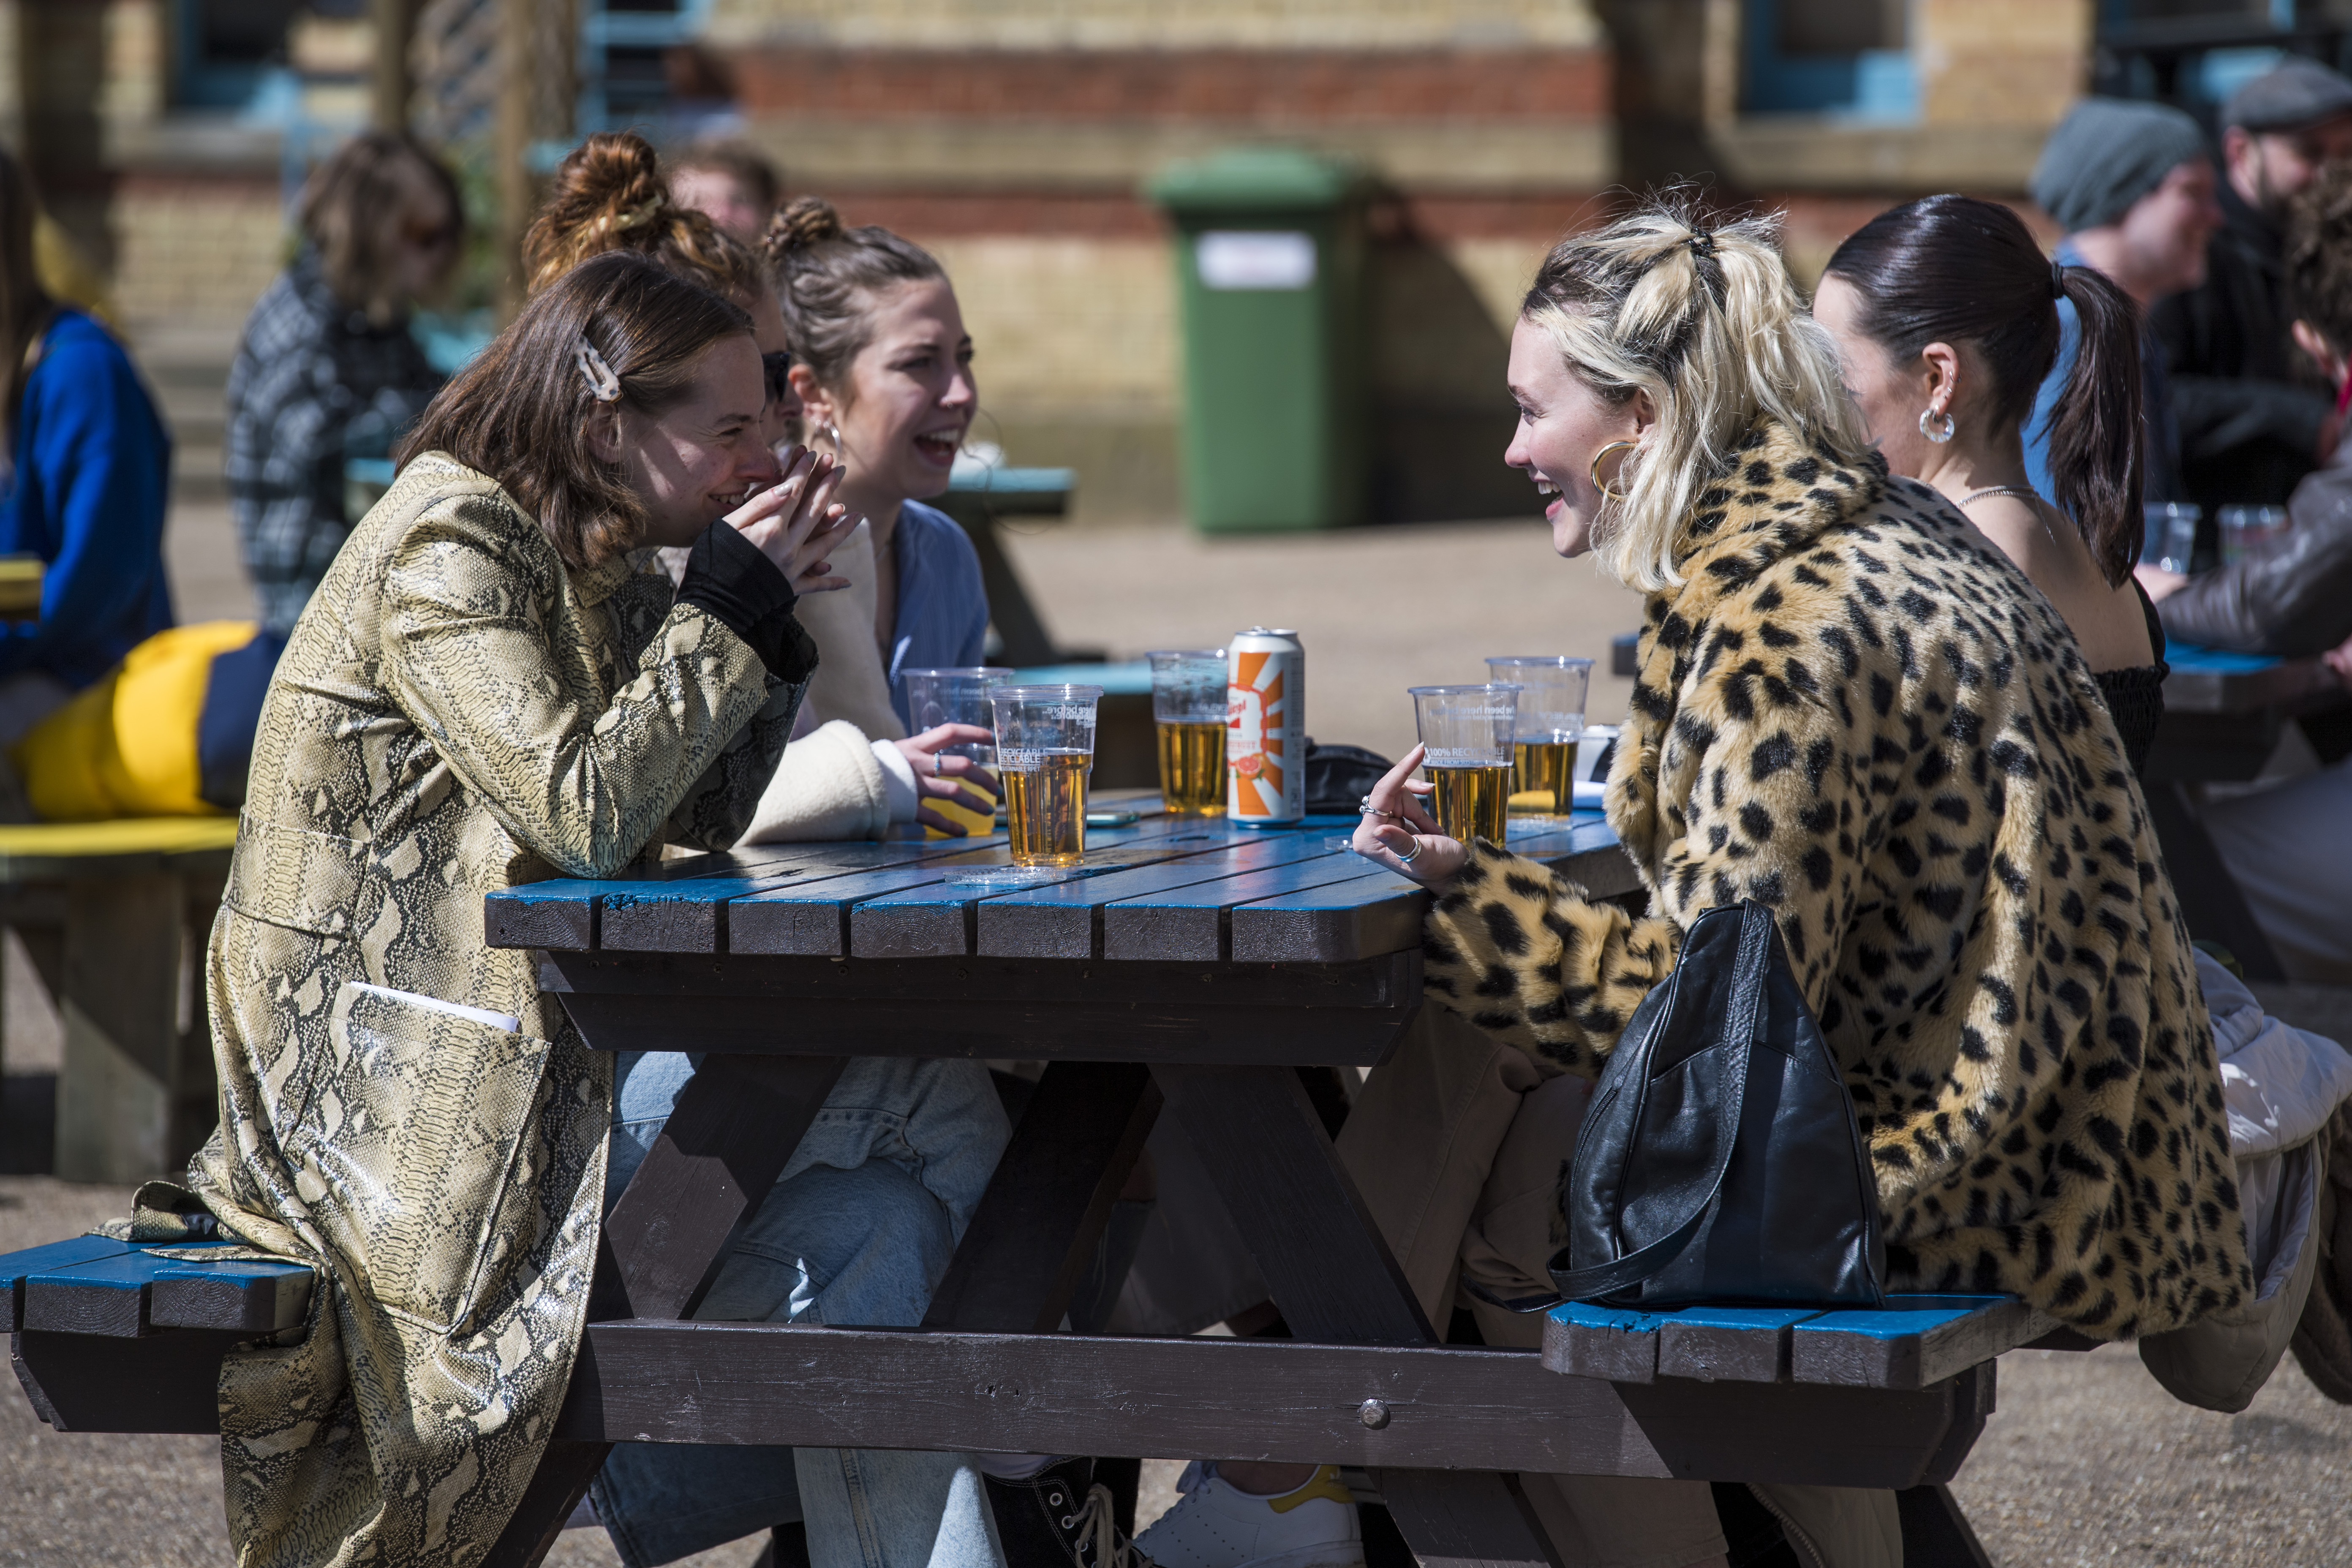 <p>Customers enjoy a drink at the reopening of the Terrace Bar at Alexandra Palace, London, as England takes another step back towards normality with the further easing of lockdown restrictions. Picture date: Monday April 12, 2021.</p>